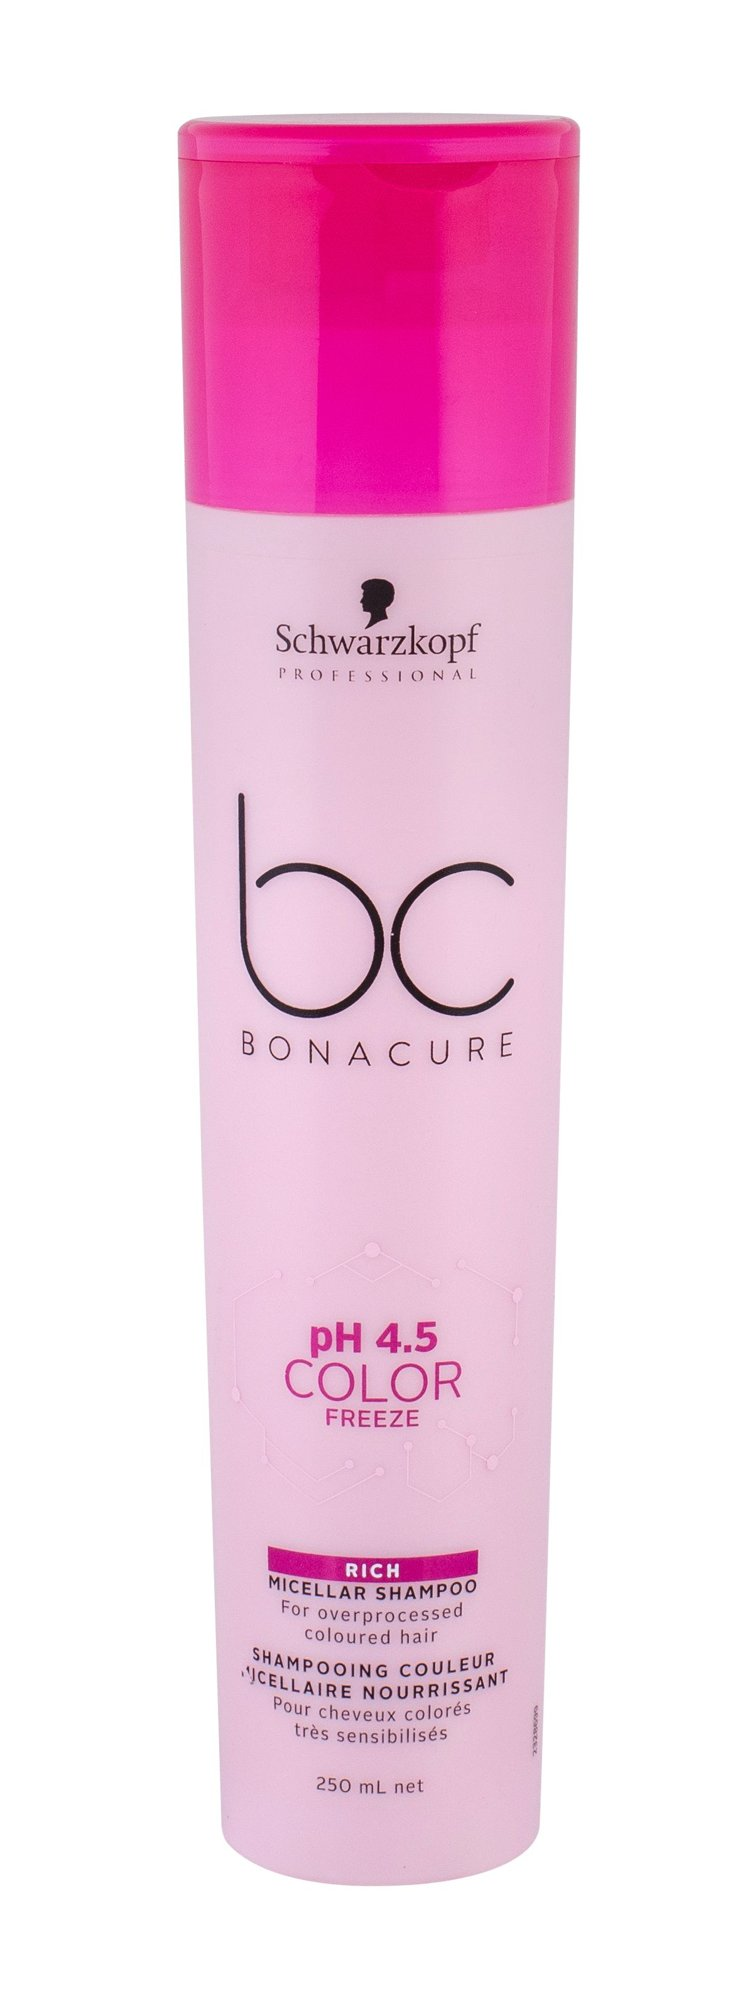 Schwarzkopf Professional BC Bonacure pH 4.5 Color Freeze Shampoo 250ml